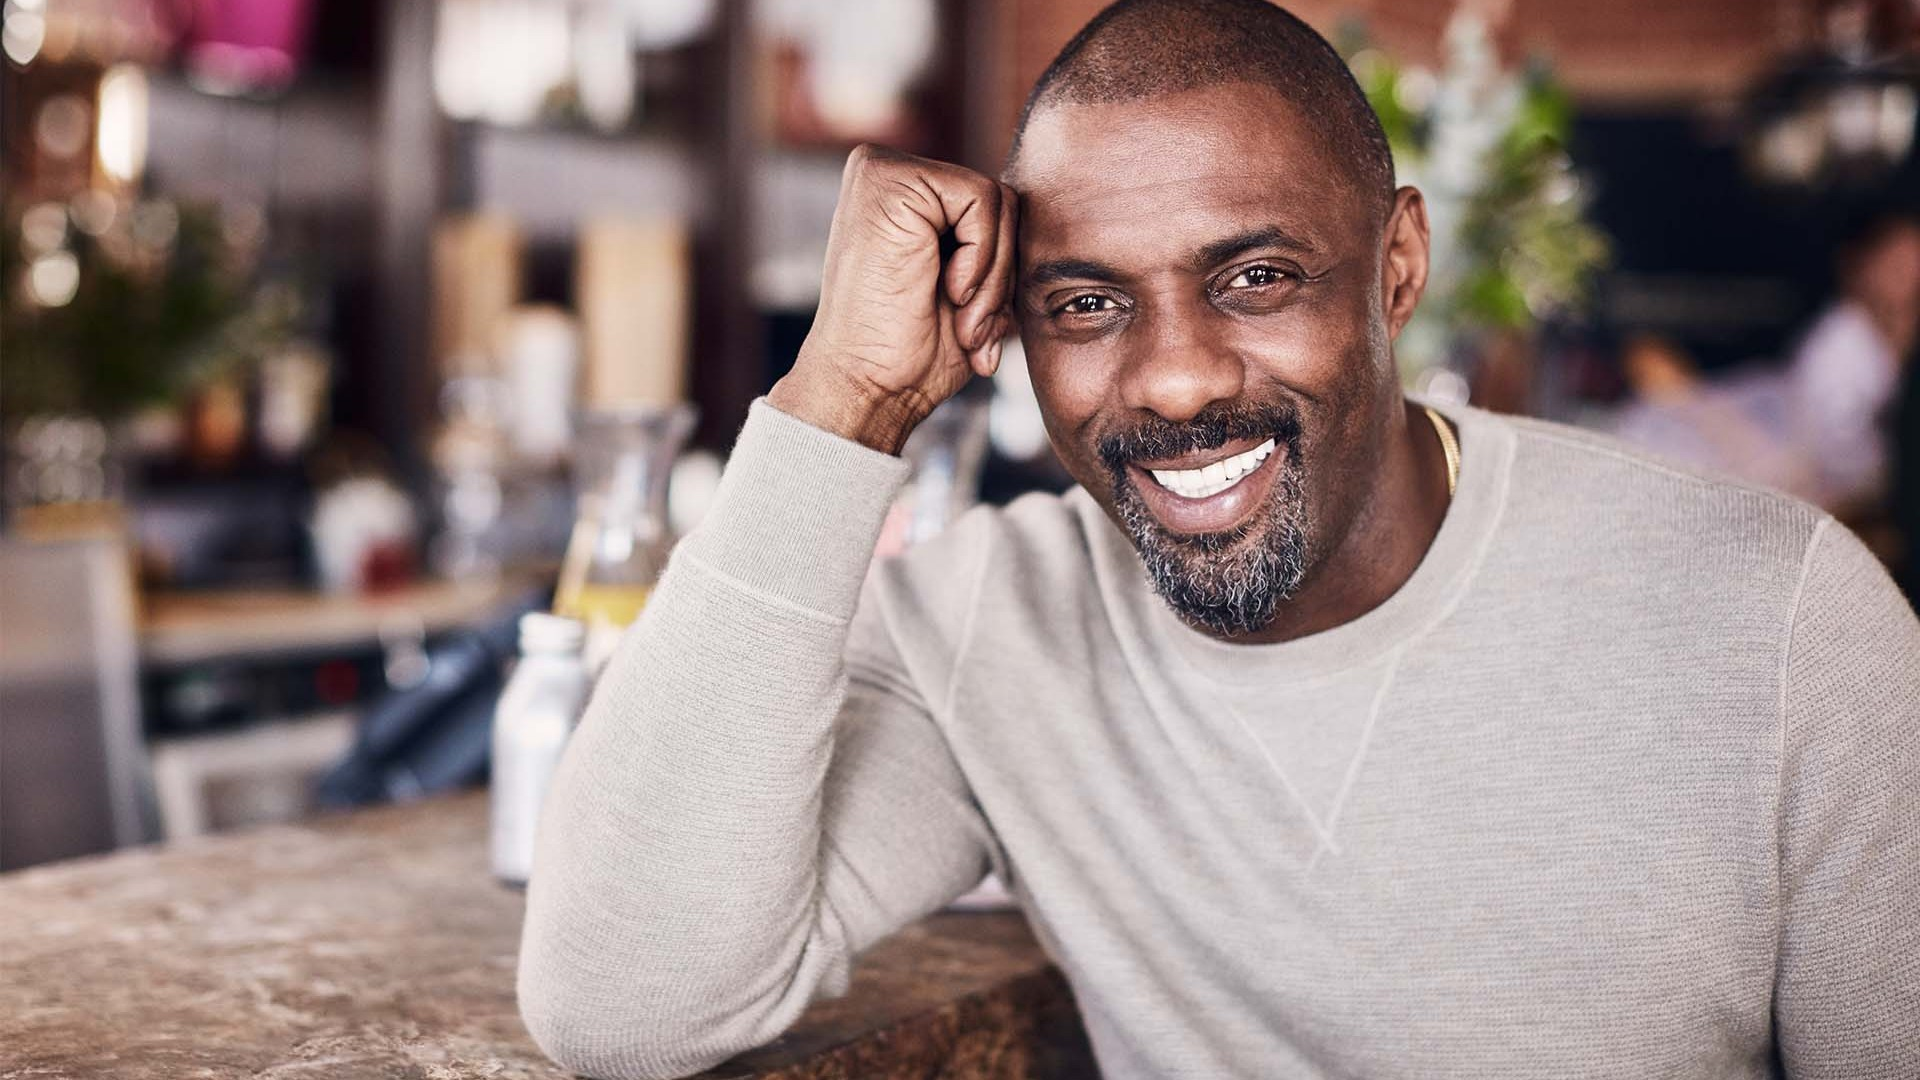 Idris Elba Square Mile interview